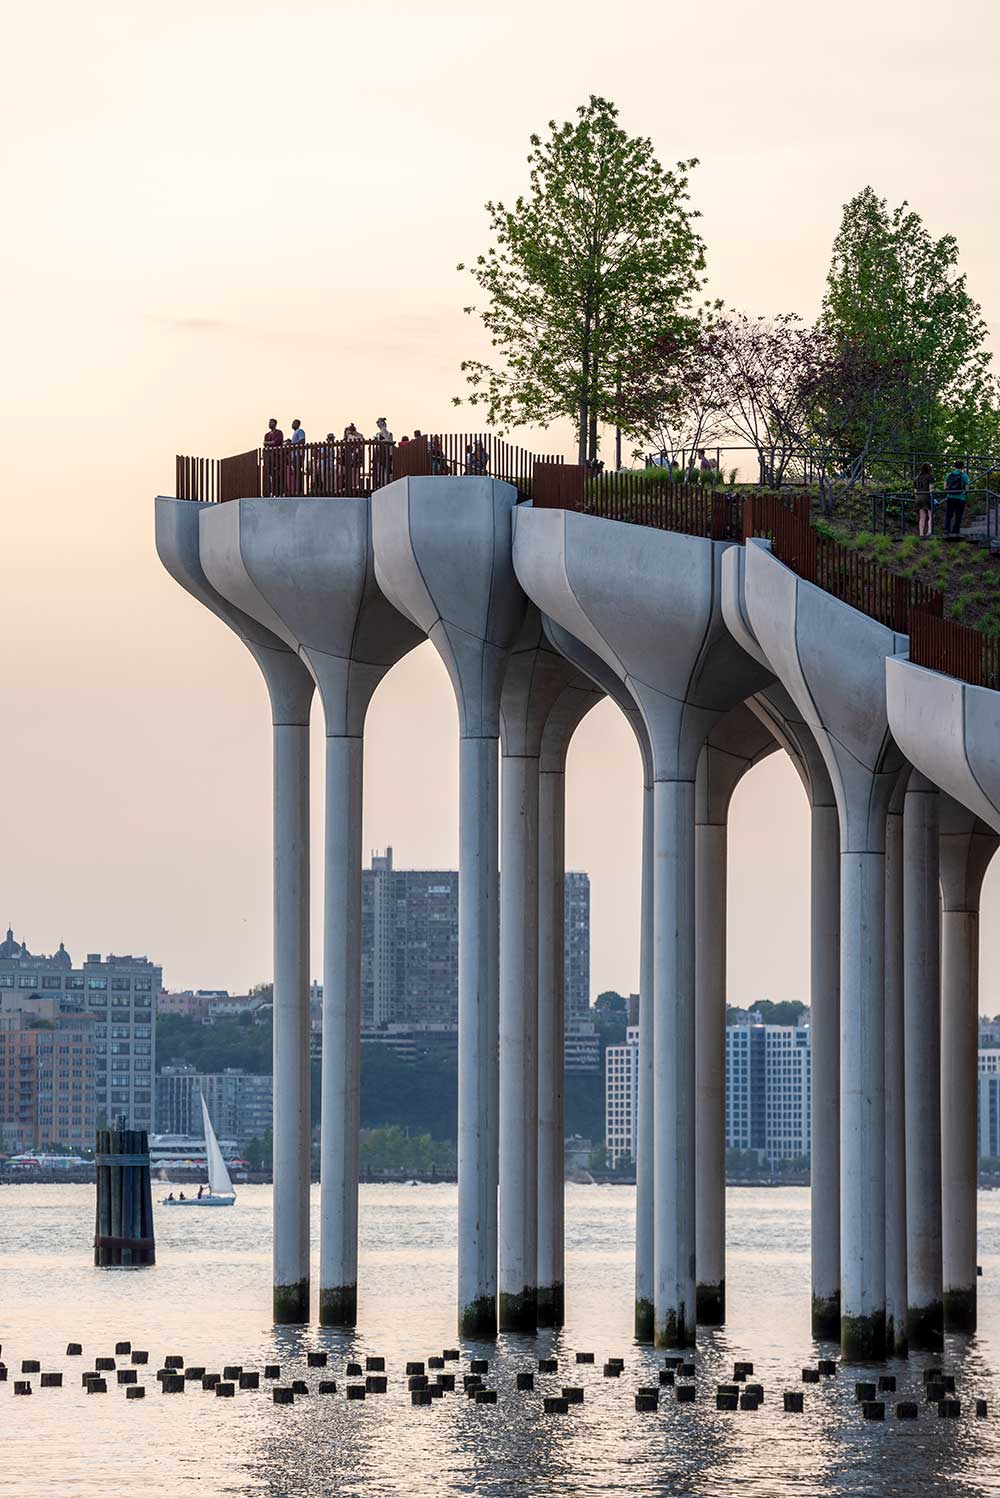 Little Island's original design concept pictured a park 'floating' above the Hudson River, propped up by a complex array of piles of differing heights. (Image: Timothy Schenck)